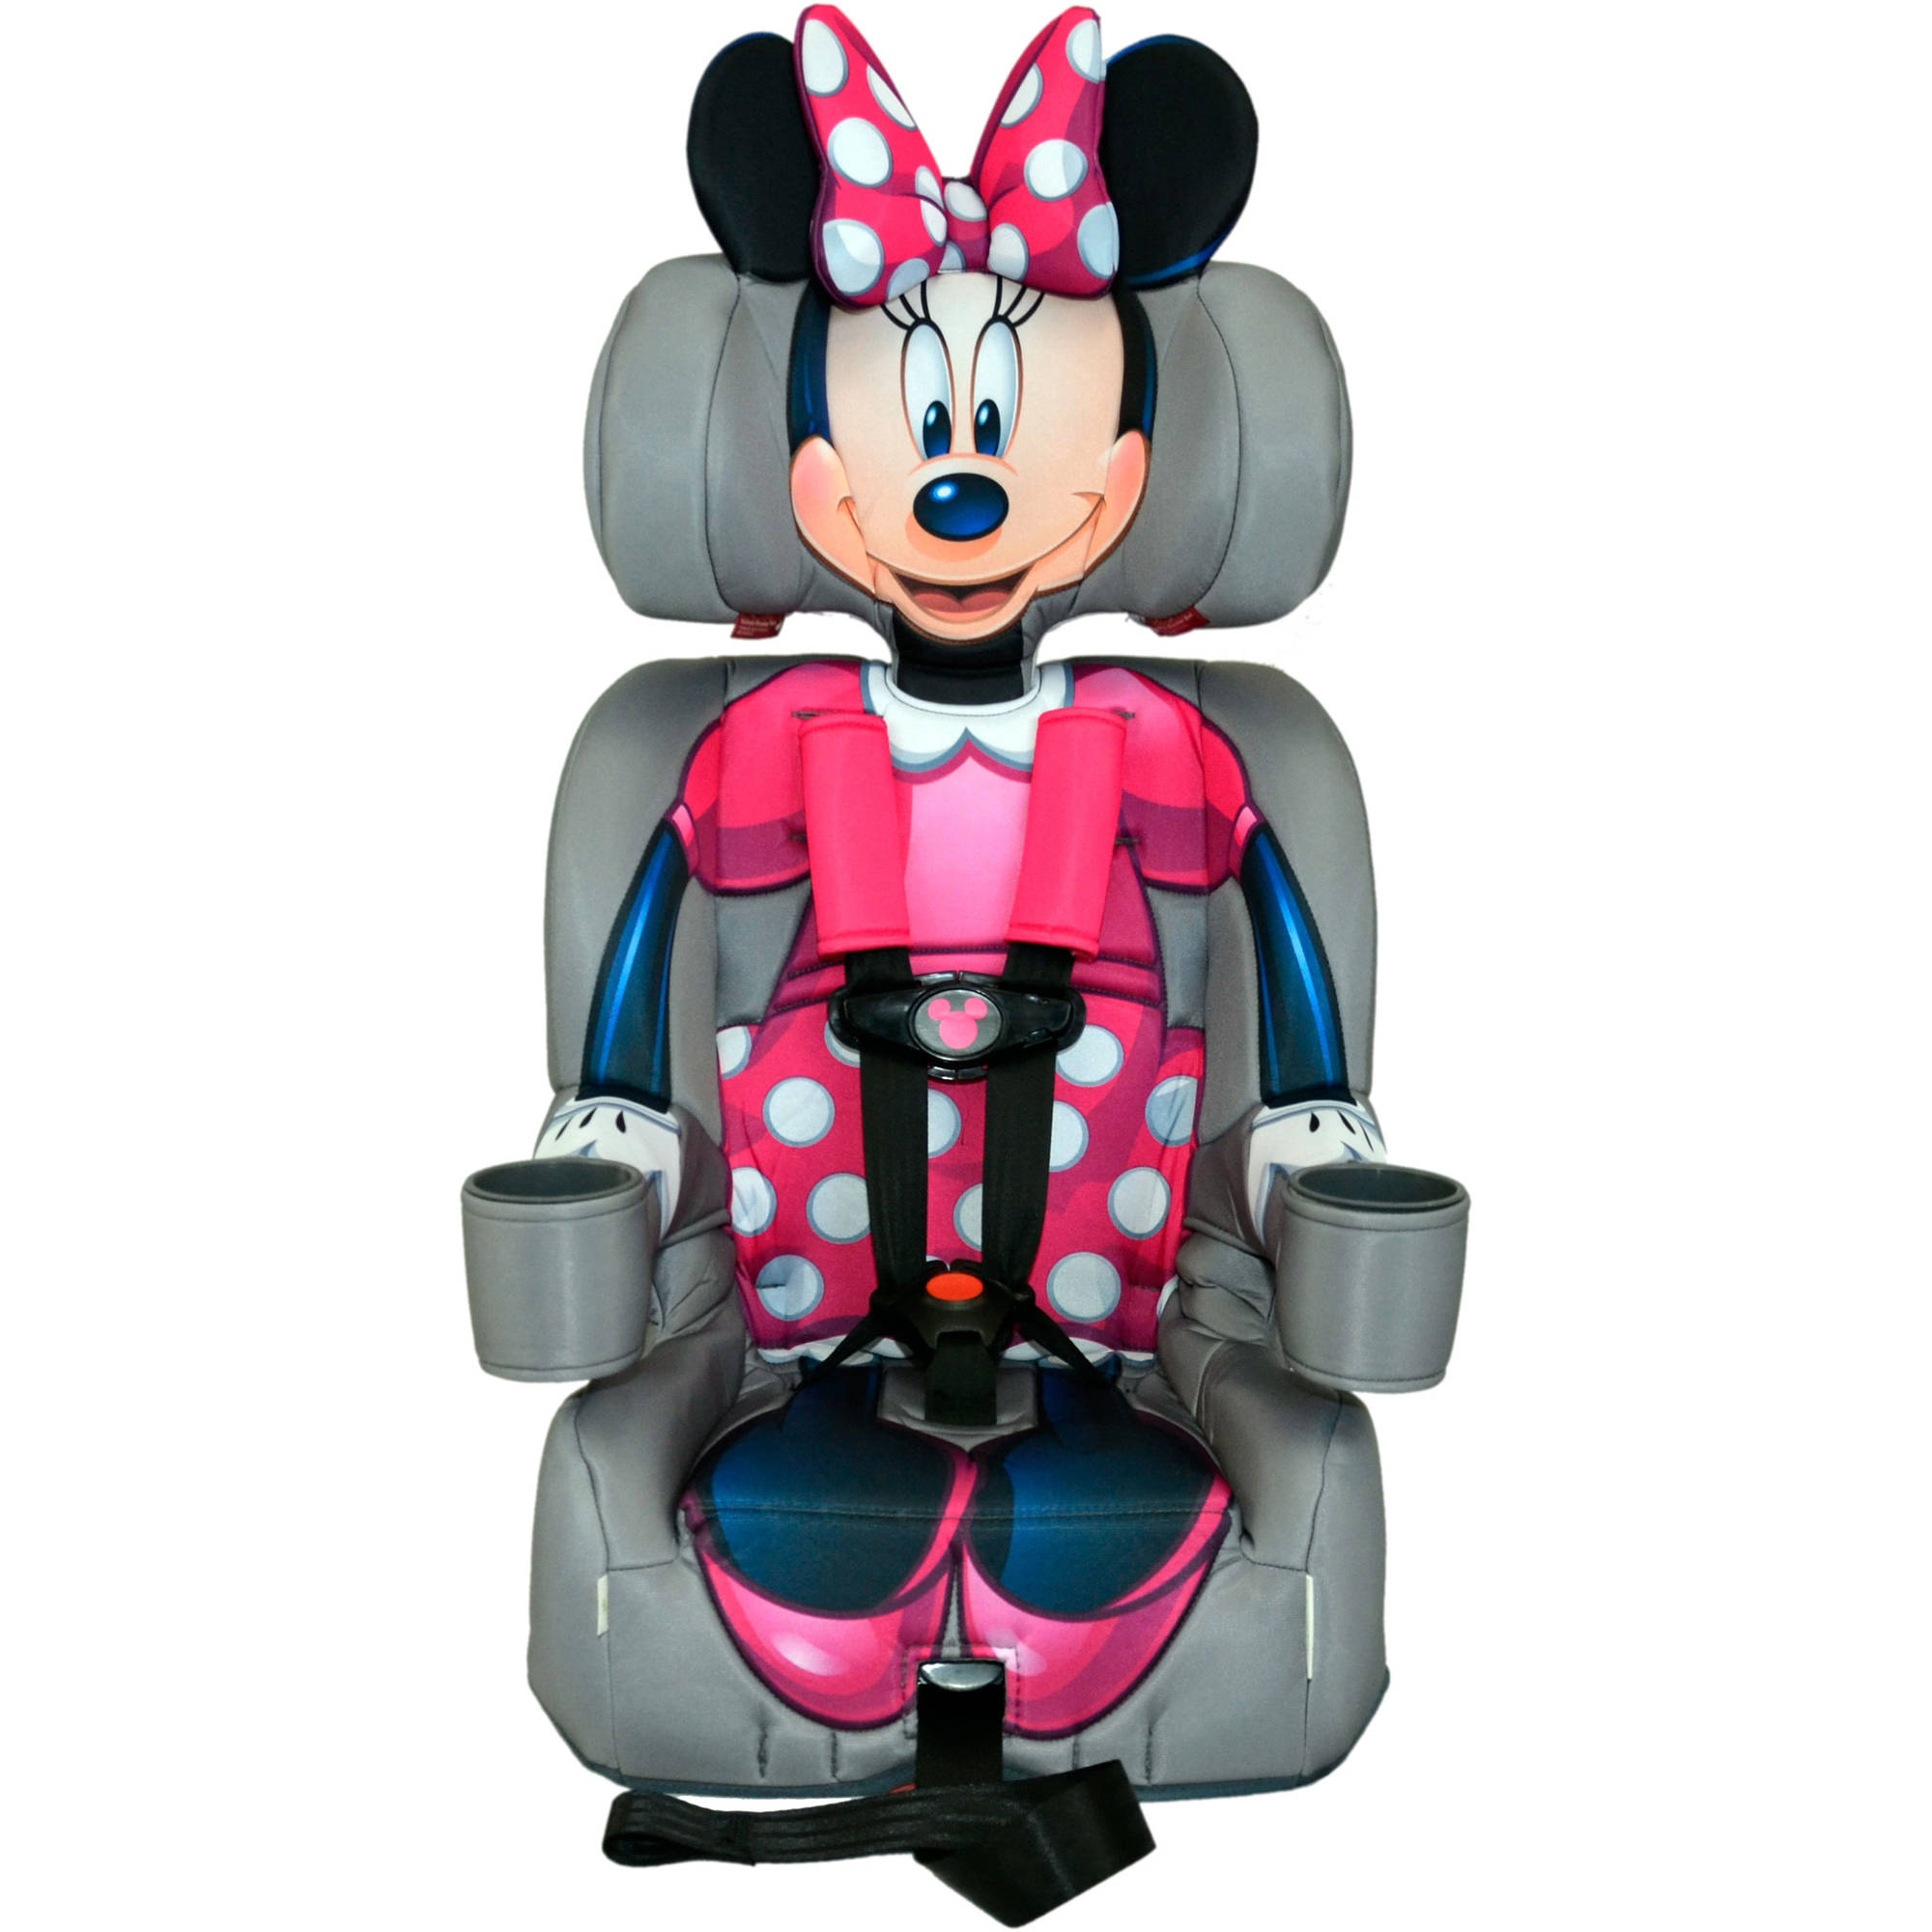 KidsEmbrace Disney Minnie Mouse Combination Harness Booster Car Seat